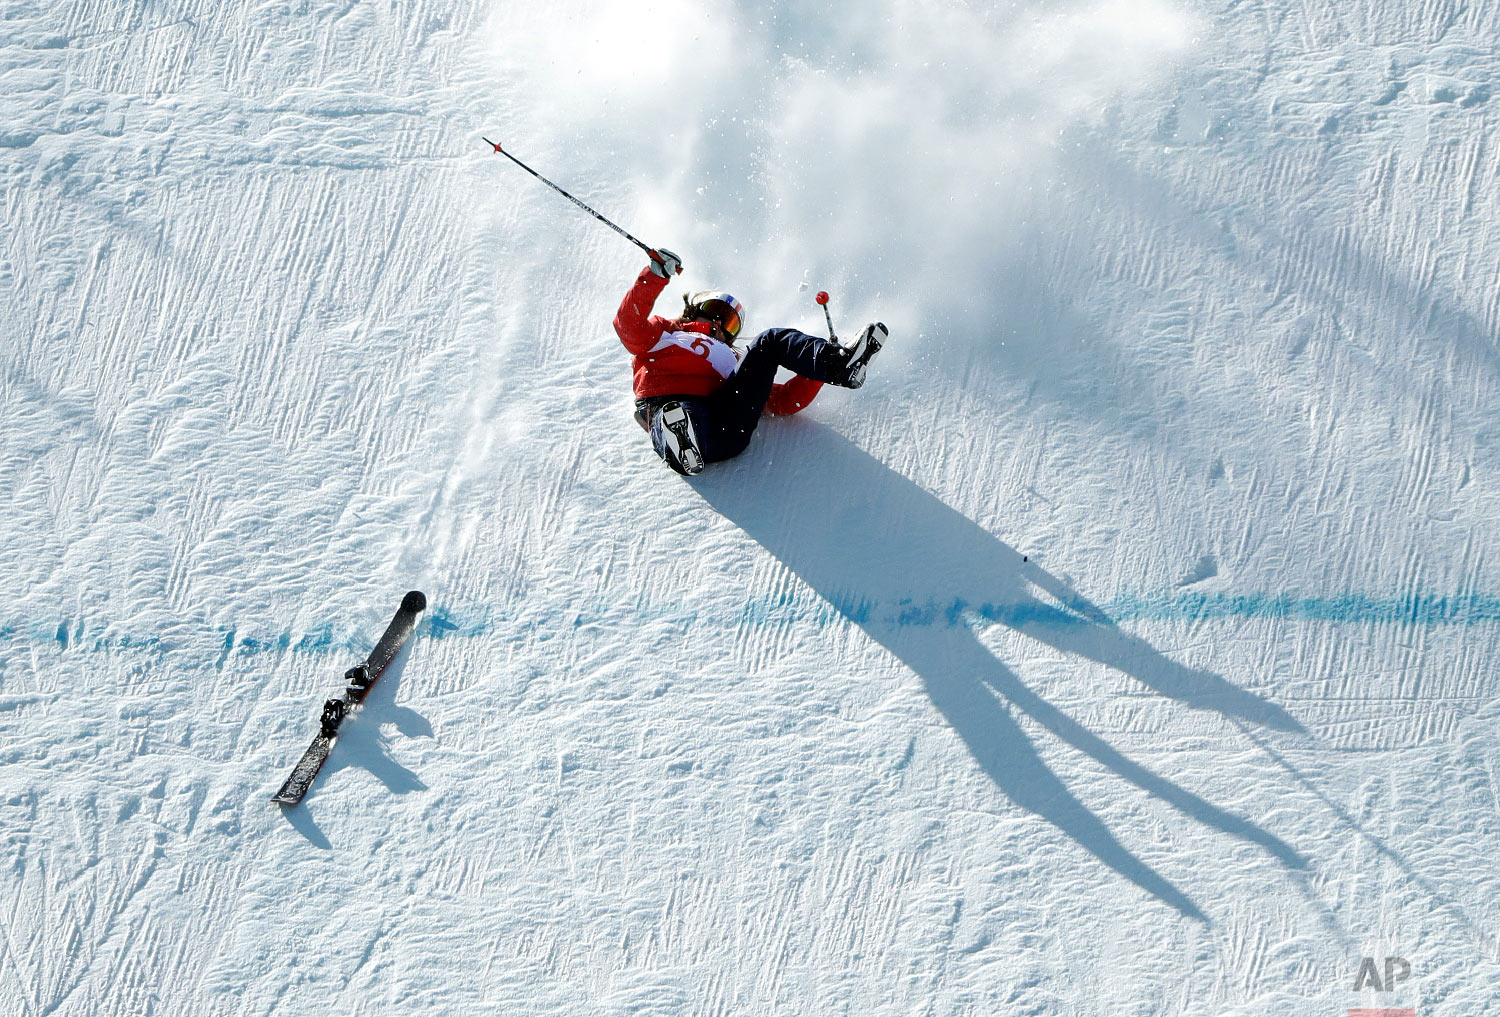 TessLedeux, of France, crashes during the women's slopestyle qualifying at Phoenix Snow Park at the 2018 Winter Olympics in Pyeongchang, South Korea, Saturday, Feb. 17, 2018. (AP Photo/Gregory Bull)